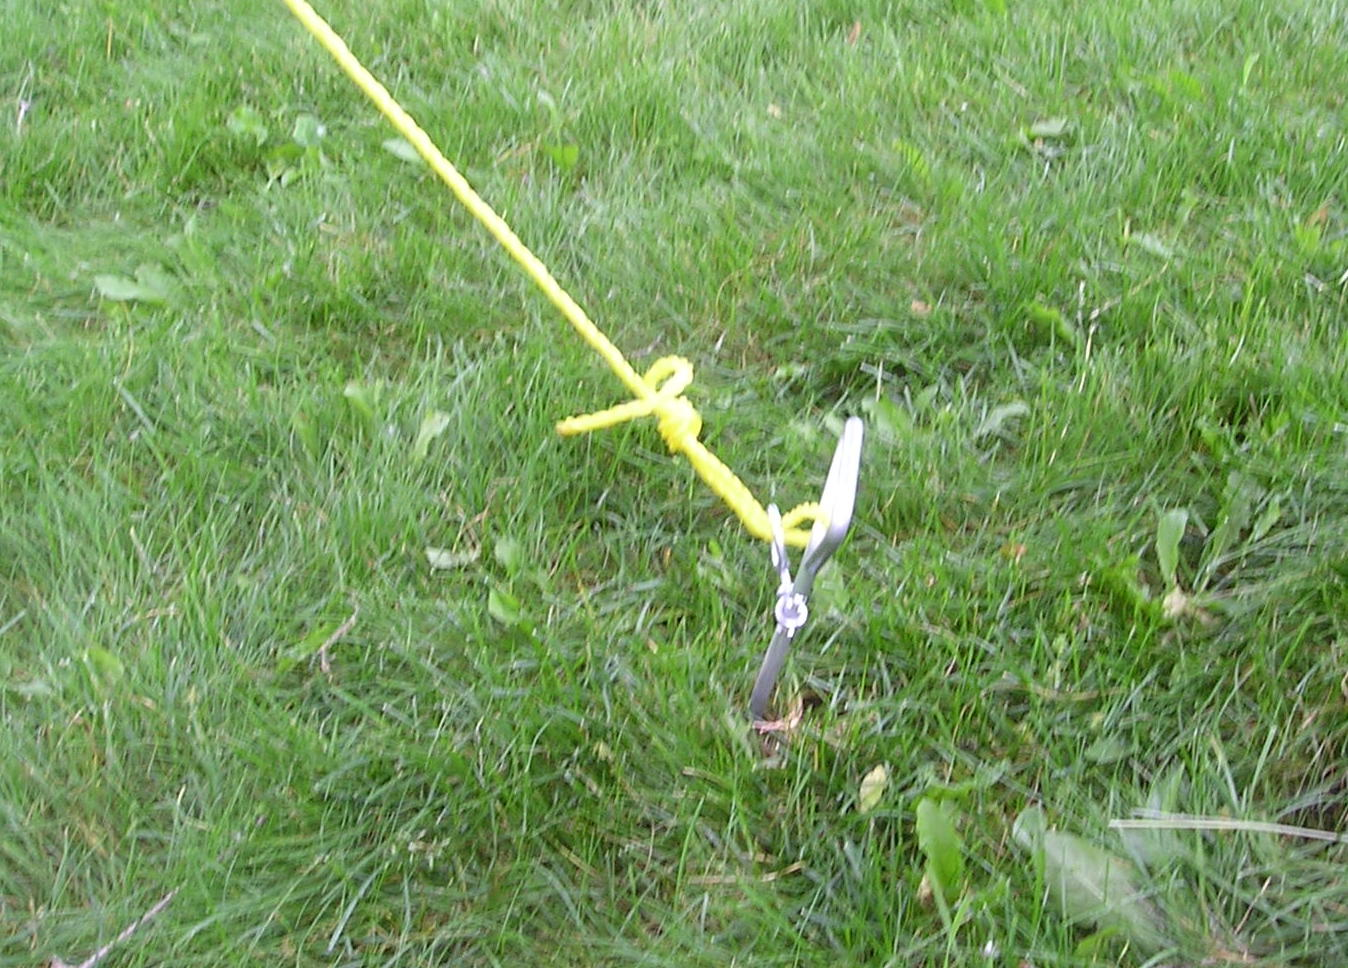 Typical taut-line hitch used to hold put tension on a wire antenna